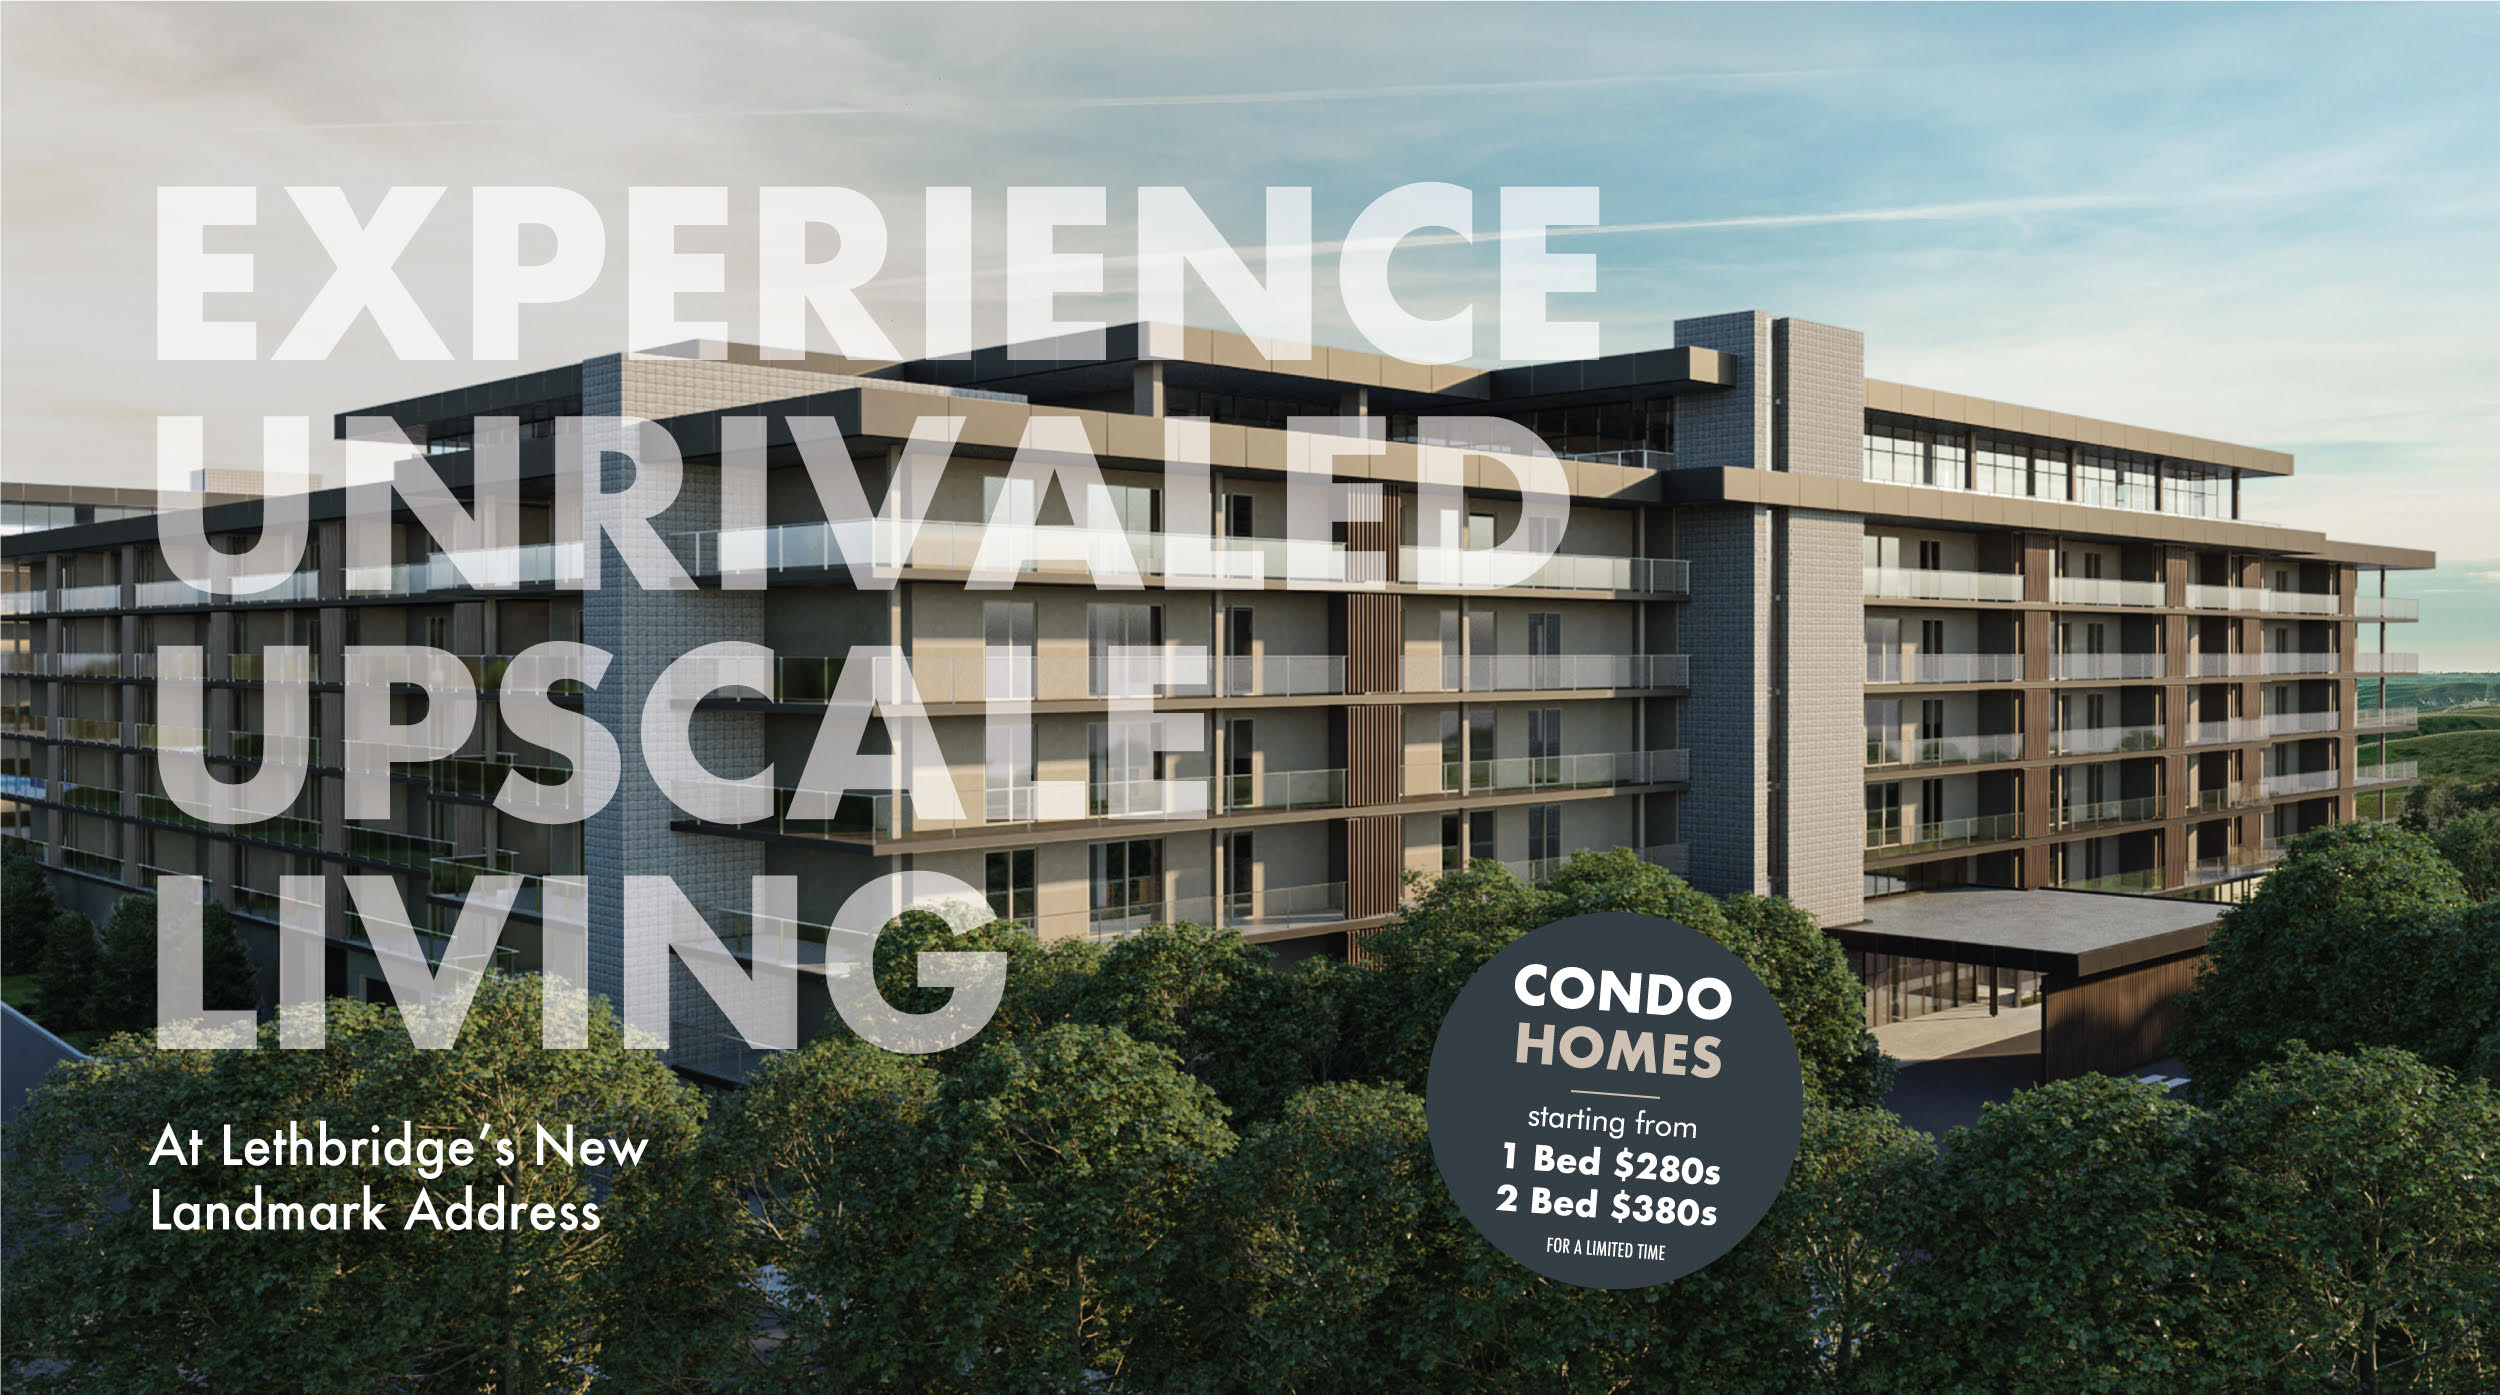 1 and 2 Bedroom Condos with 102 Scenic Drive